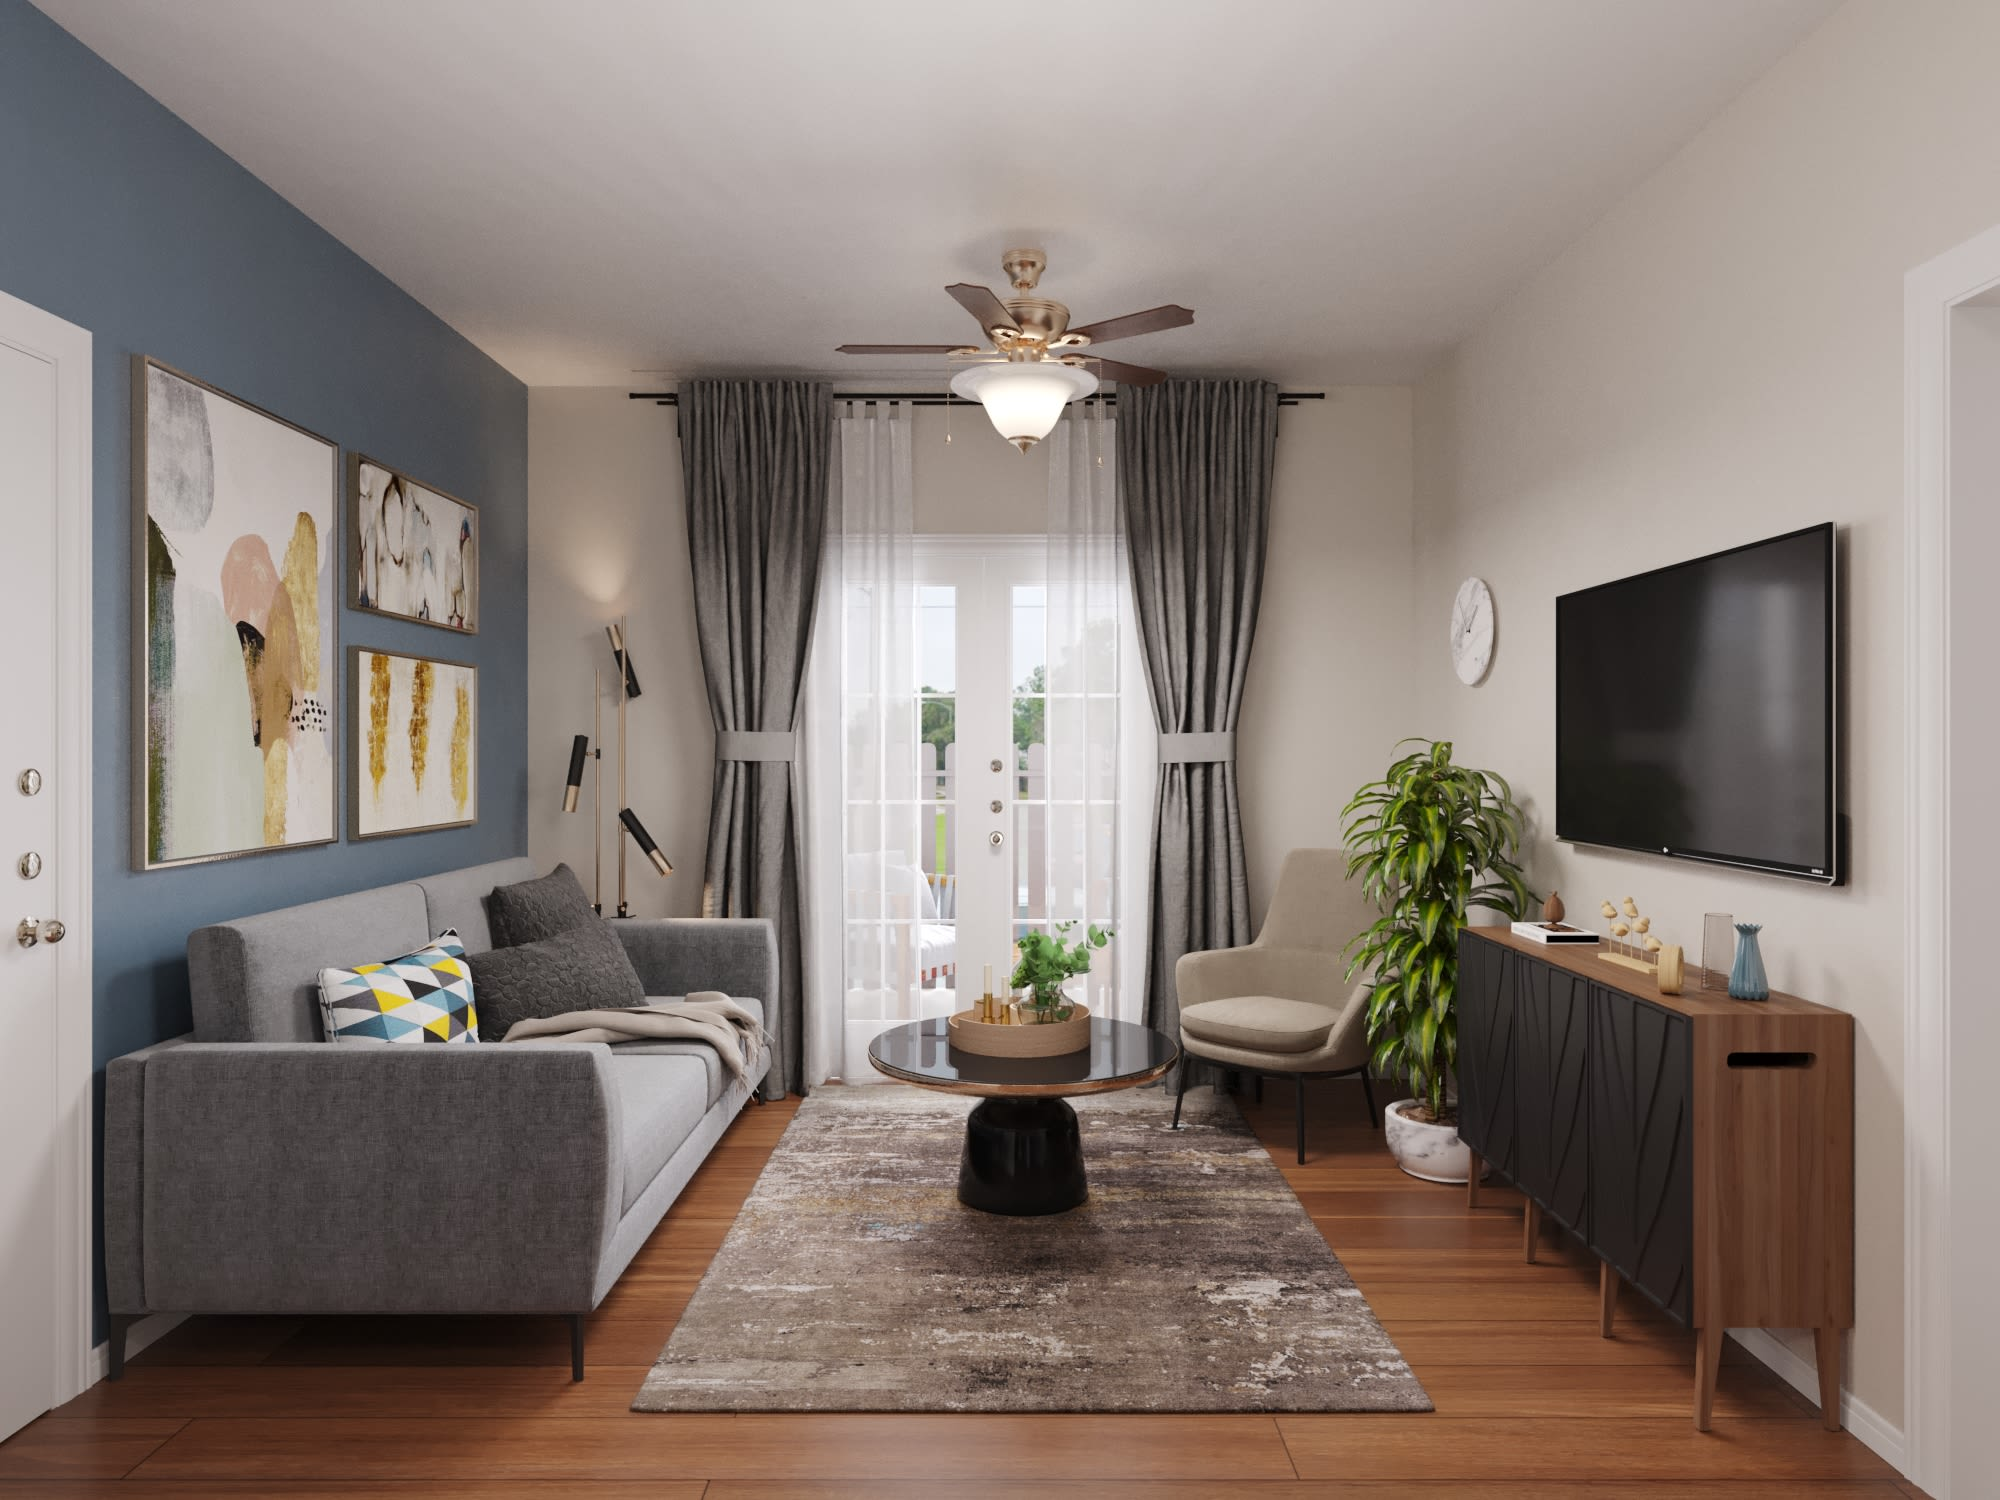 View virtual tour for 1 bedroom 1 bathroom home at Vantage Point in Houston, Texas